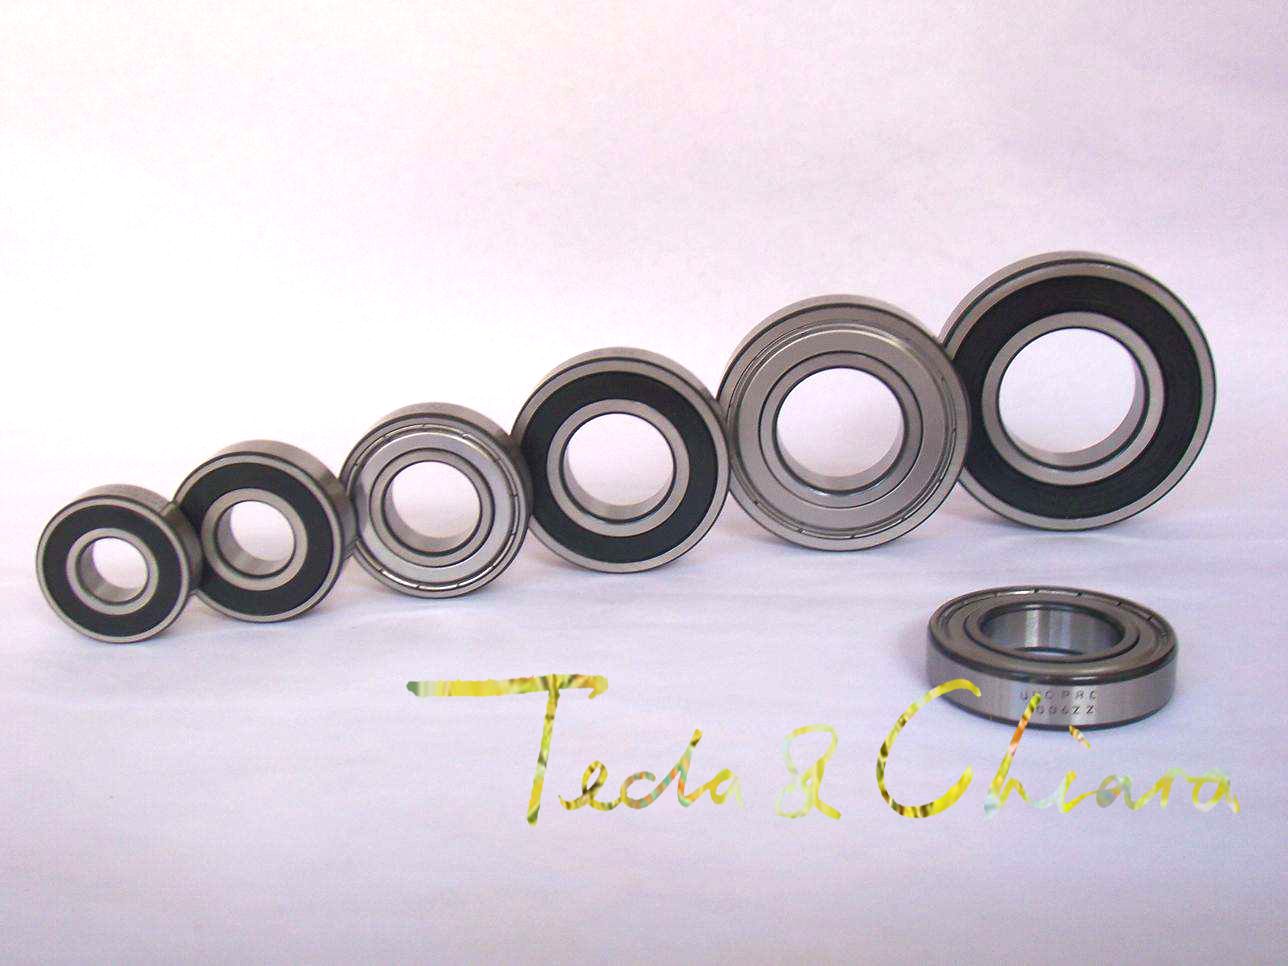 6806 6806ZZ 6806RS 6806-2Z 6806Z 6806-2RS ZZ RS RZ 2RZ Deep Groove Ball Bearings 30 x 42 x 7mm High Quality free shipping 6806 full si3n4 p5 abec5 ceramic deep groove ball bearing 30x42x7mm 61806 full complement